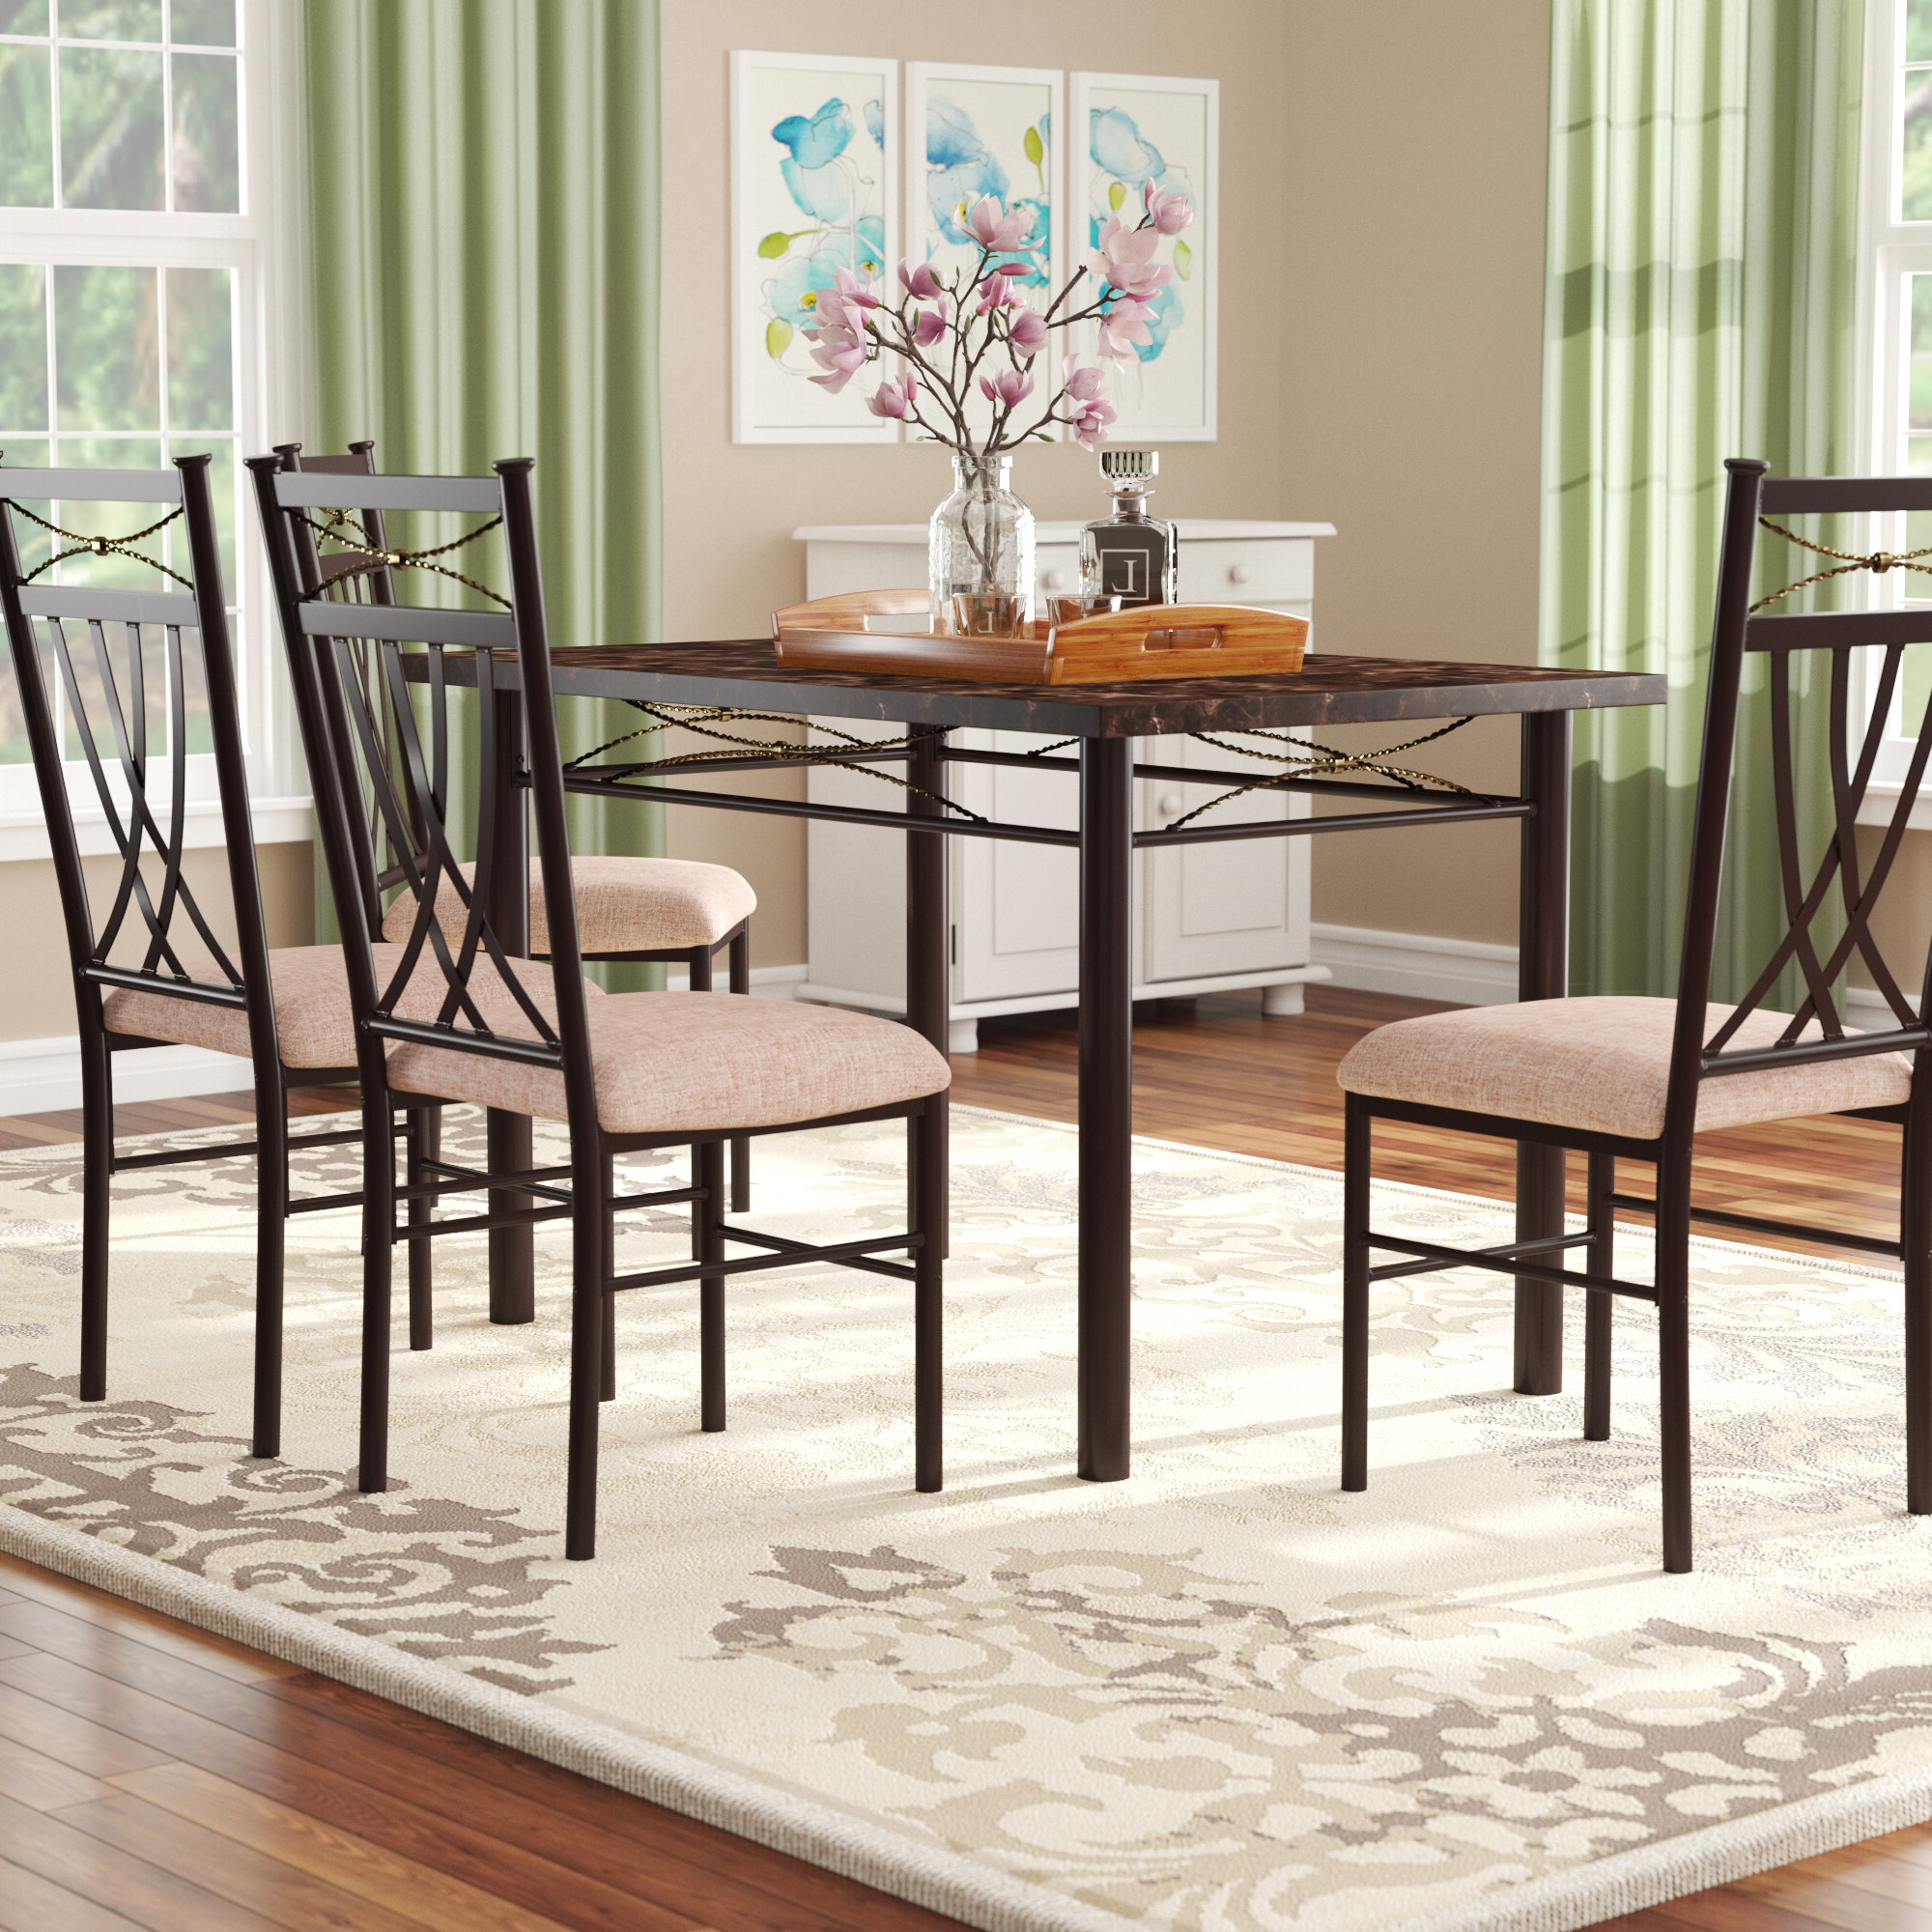 Kieffer 5 Piece Dining Sets Inside Best And Newest Branden 5 Piece Dining Set (Gallery 6 of 20)